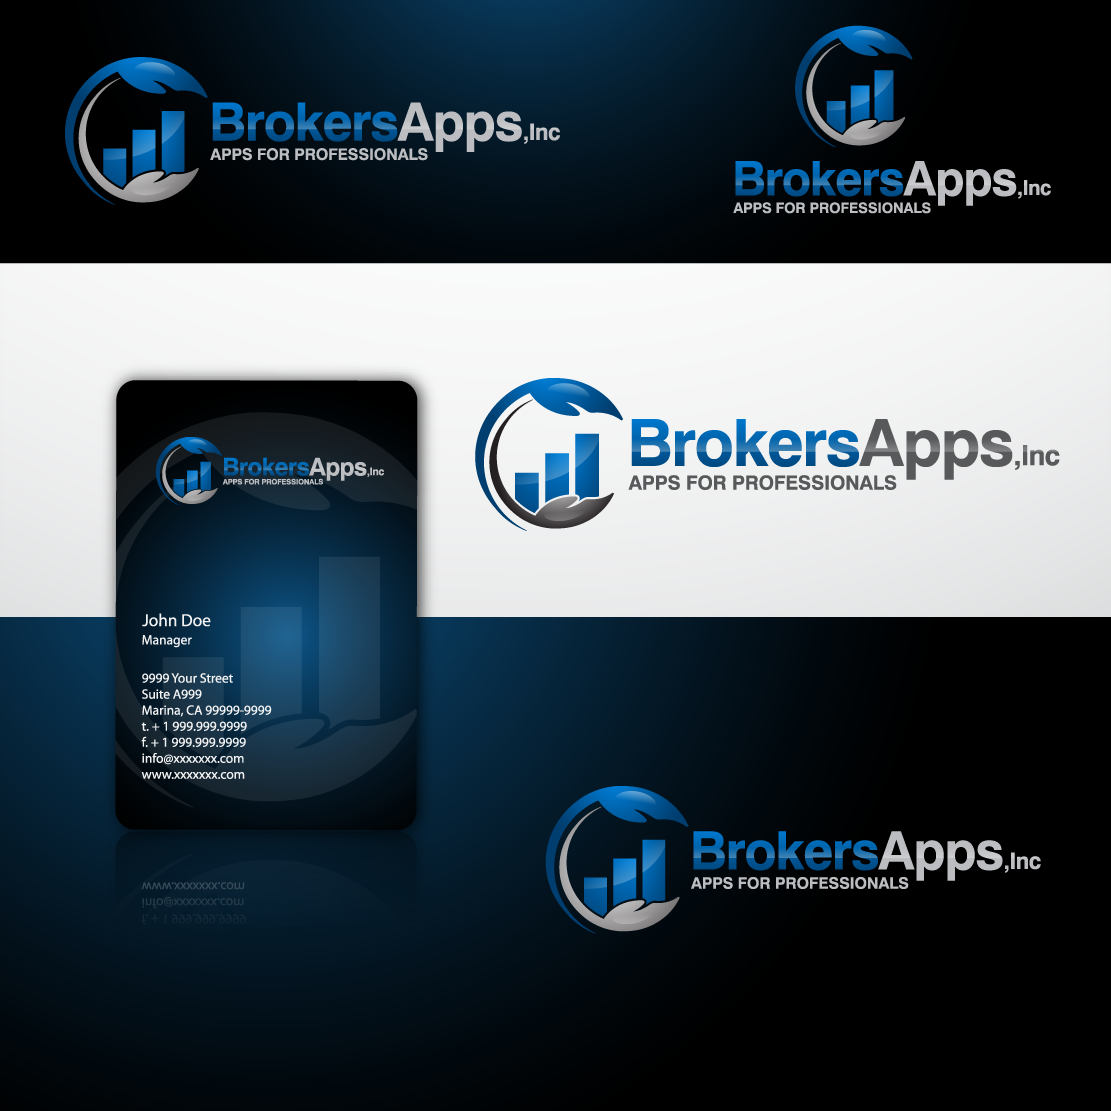 New logo wanted for BrokersApps, Inc